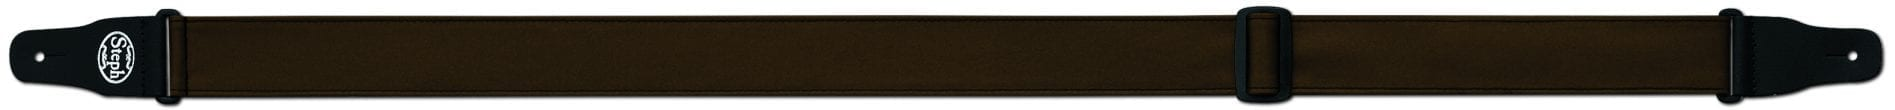 Steph Accessories Folded Leathercrest Strap 5cm Wide Brown